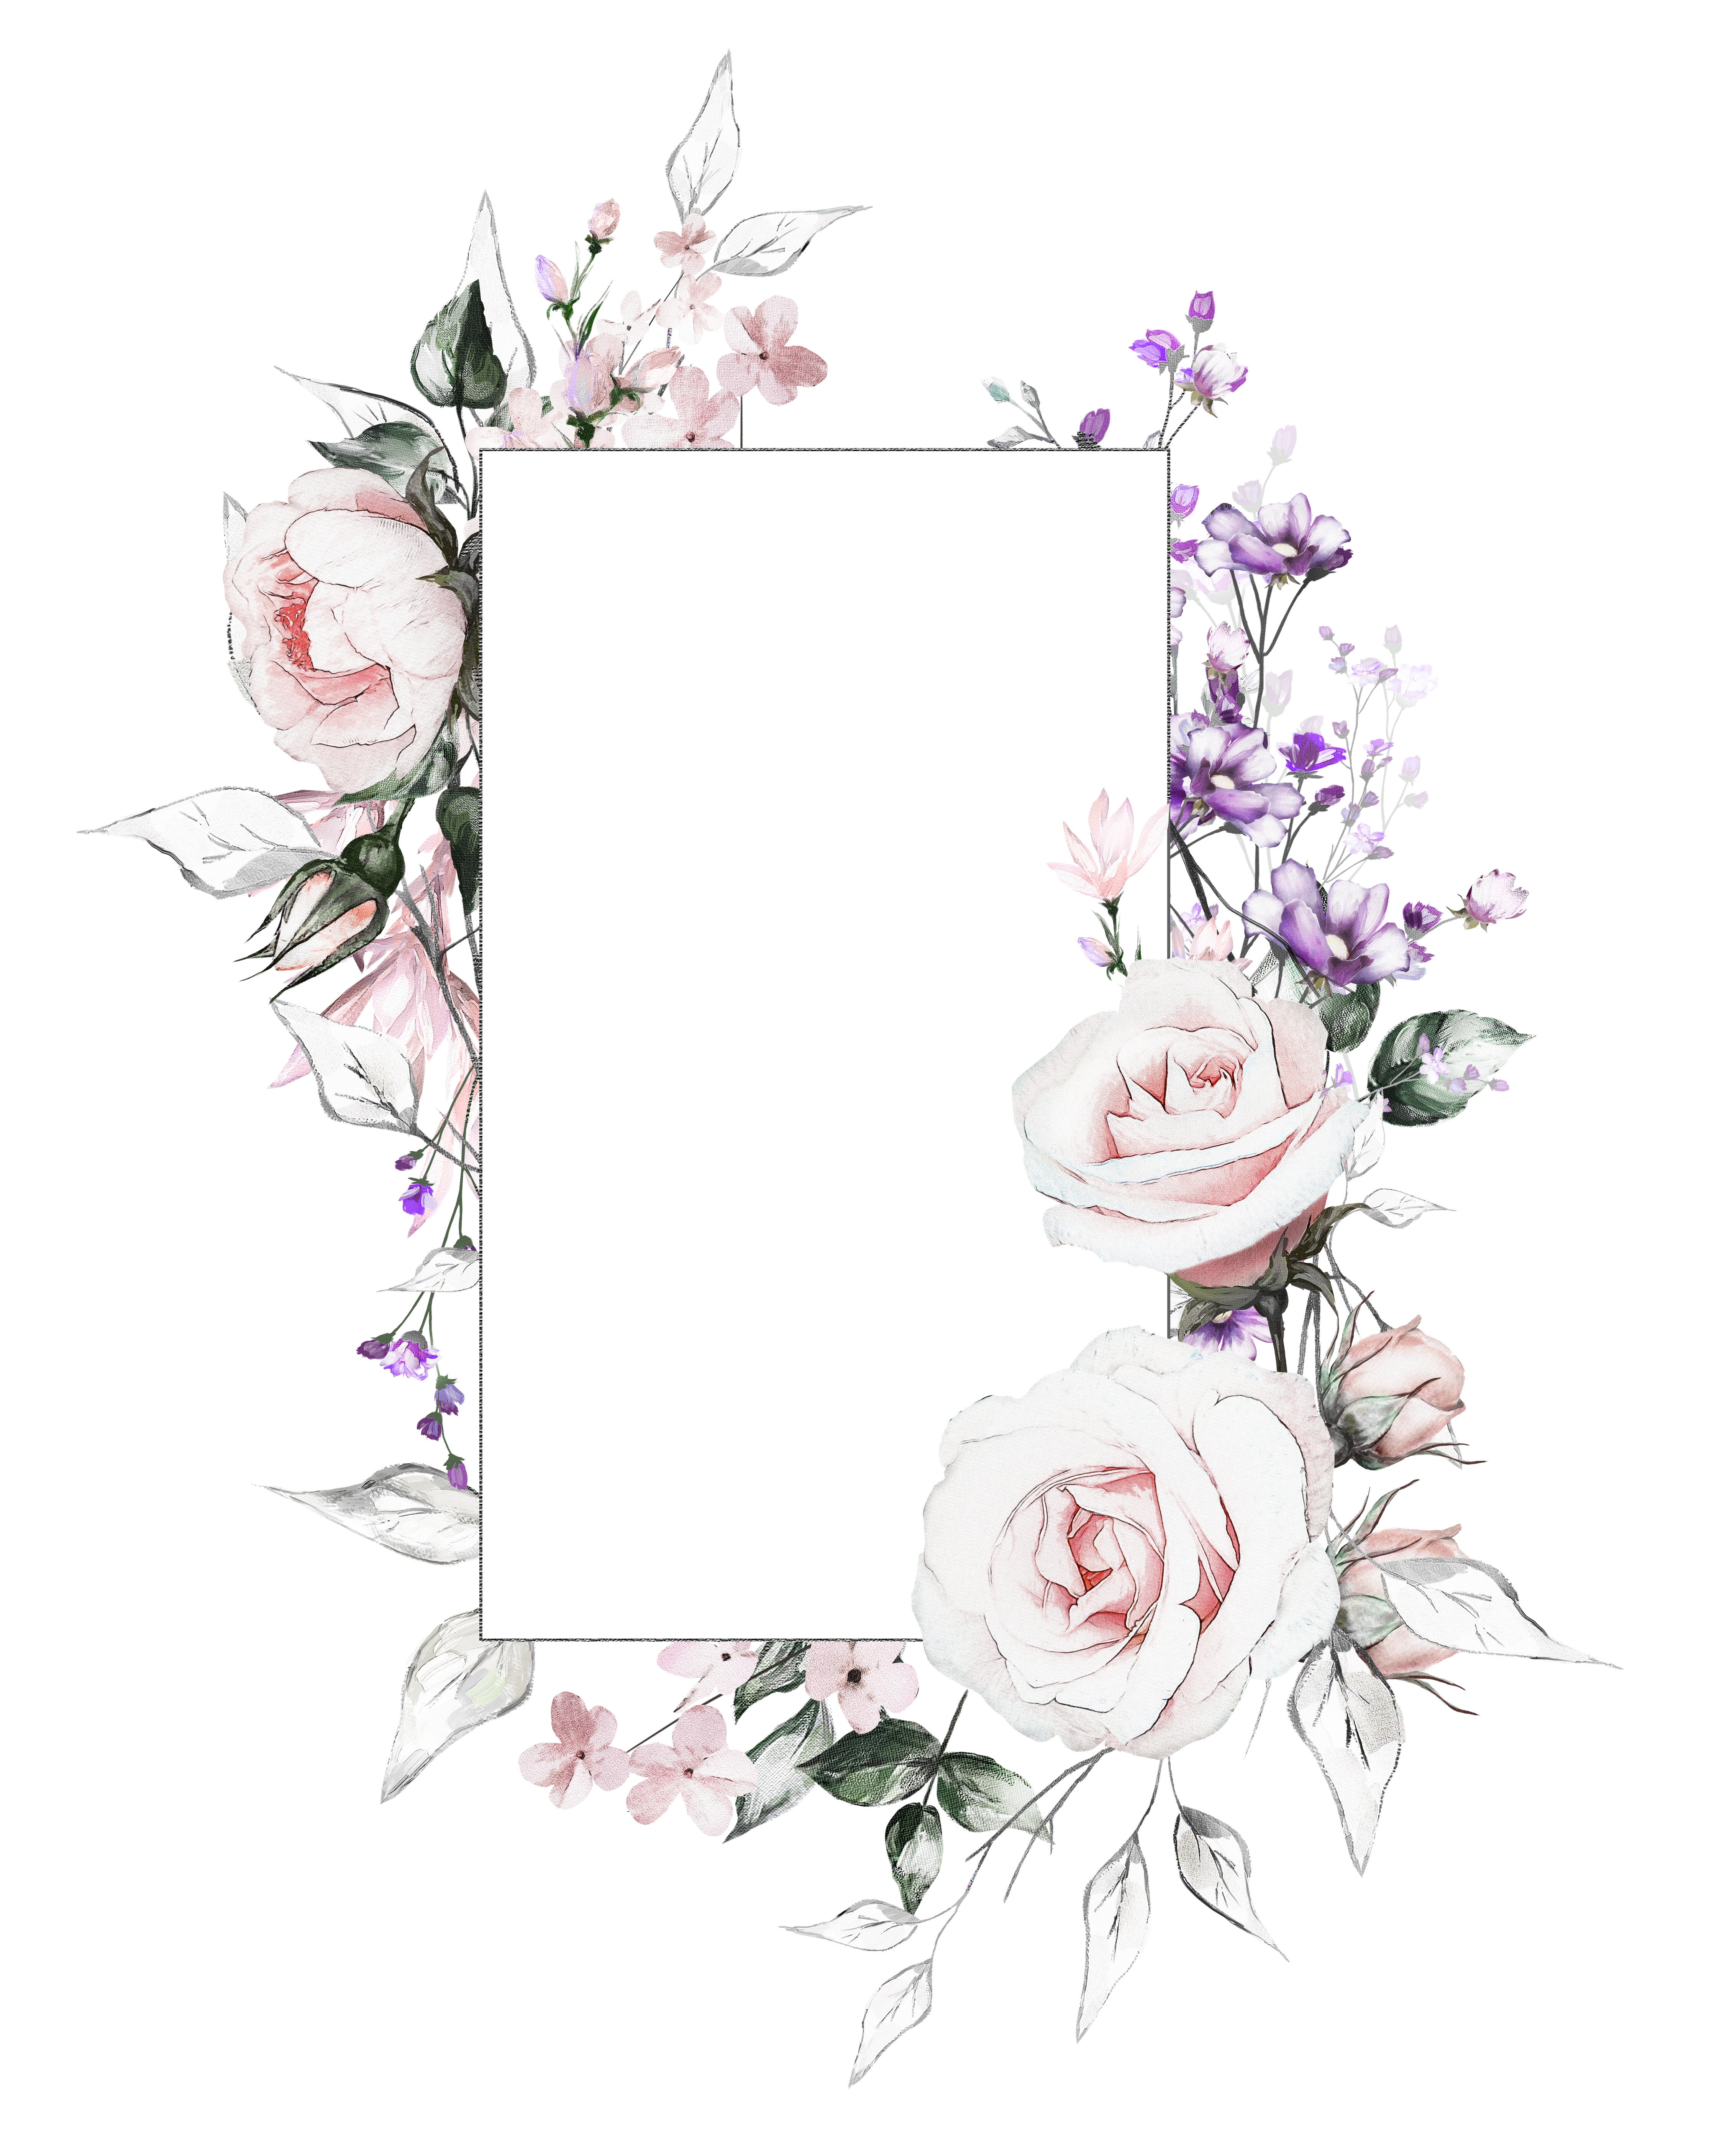 Pin By Nifili Nia On Rsx Flower Frame Floral Border Design Flower Background Wallpaper